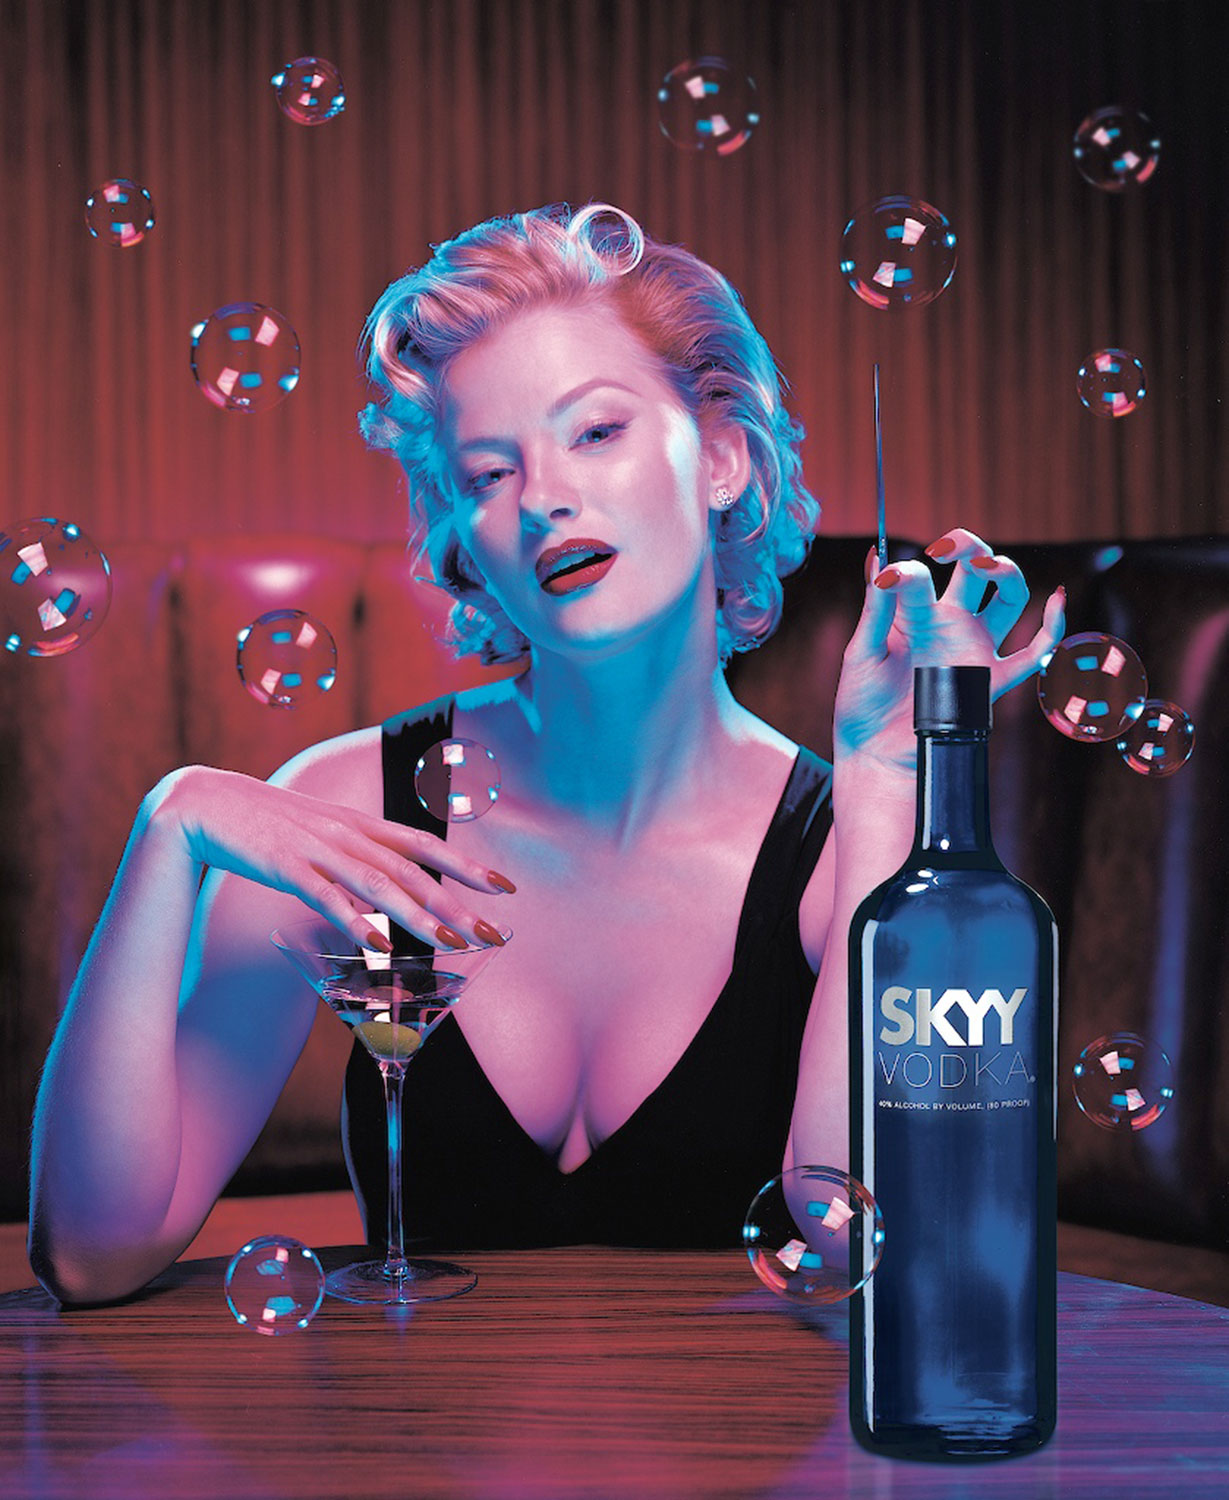 Ad Poster Collection Images Skyy Vodka 002 Hd Wallpaper And